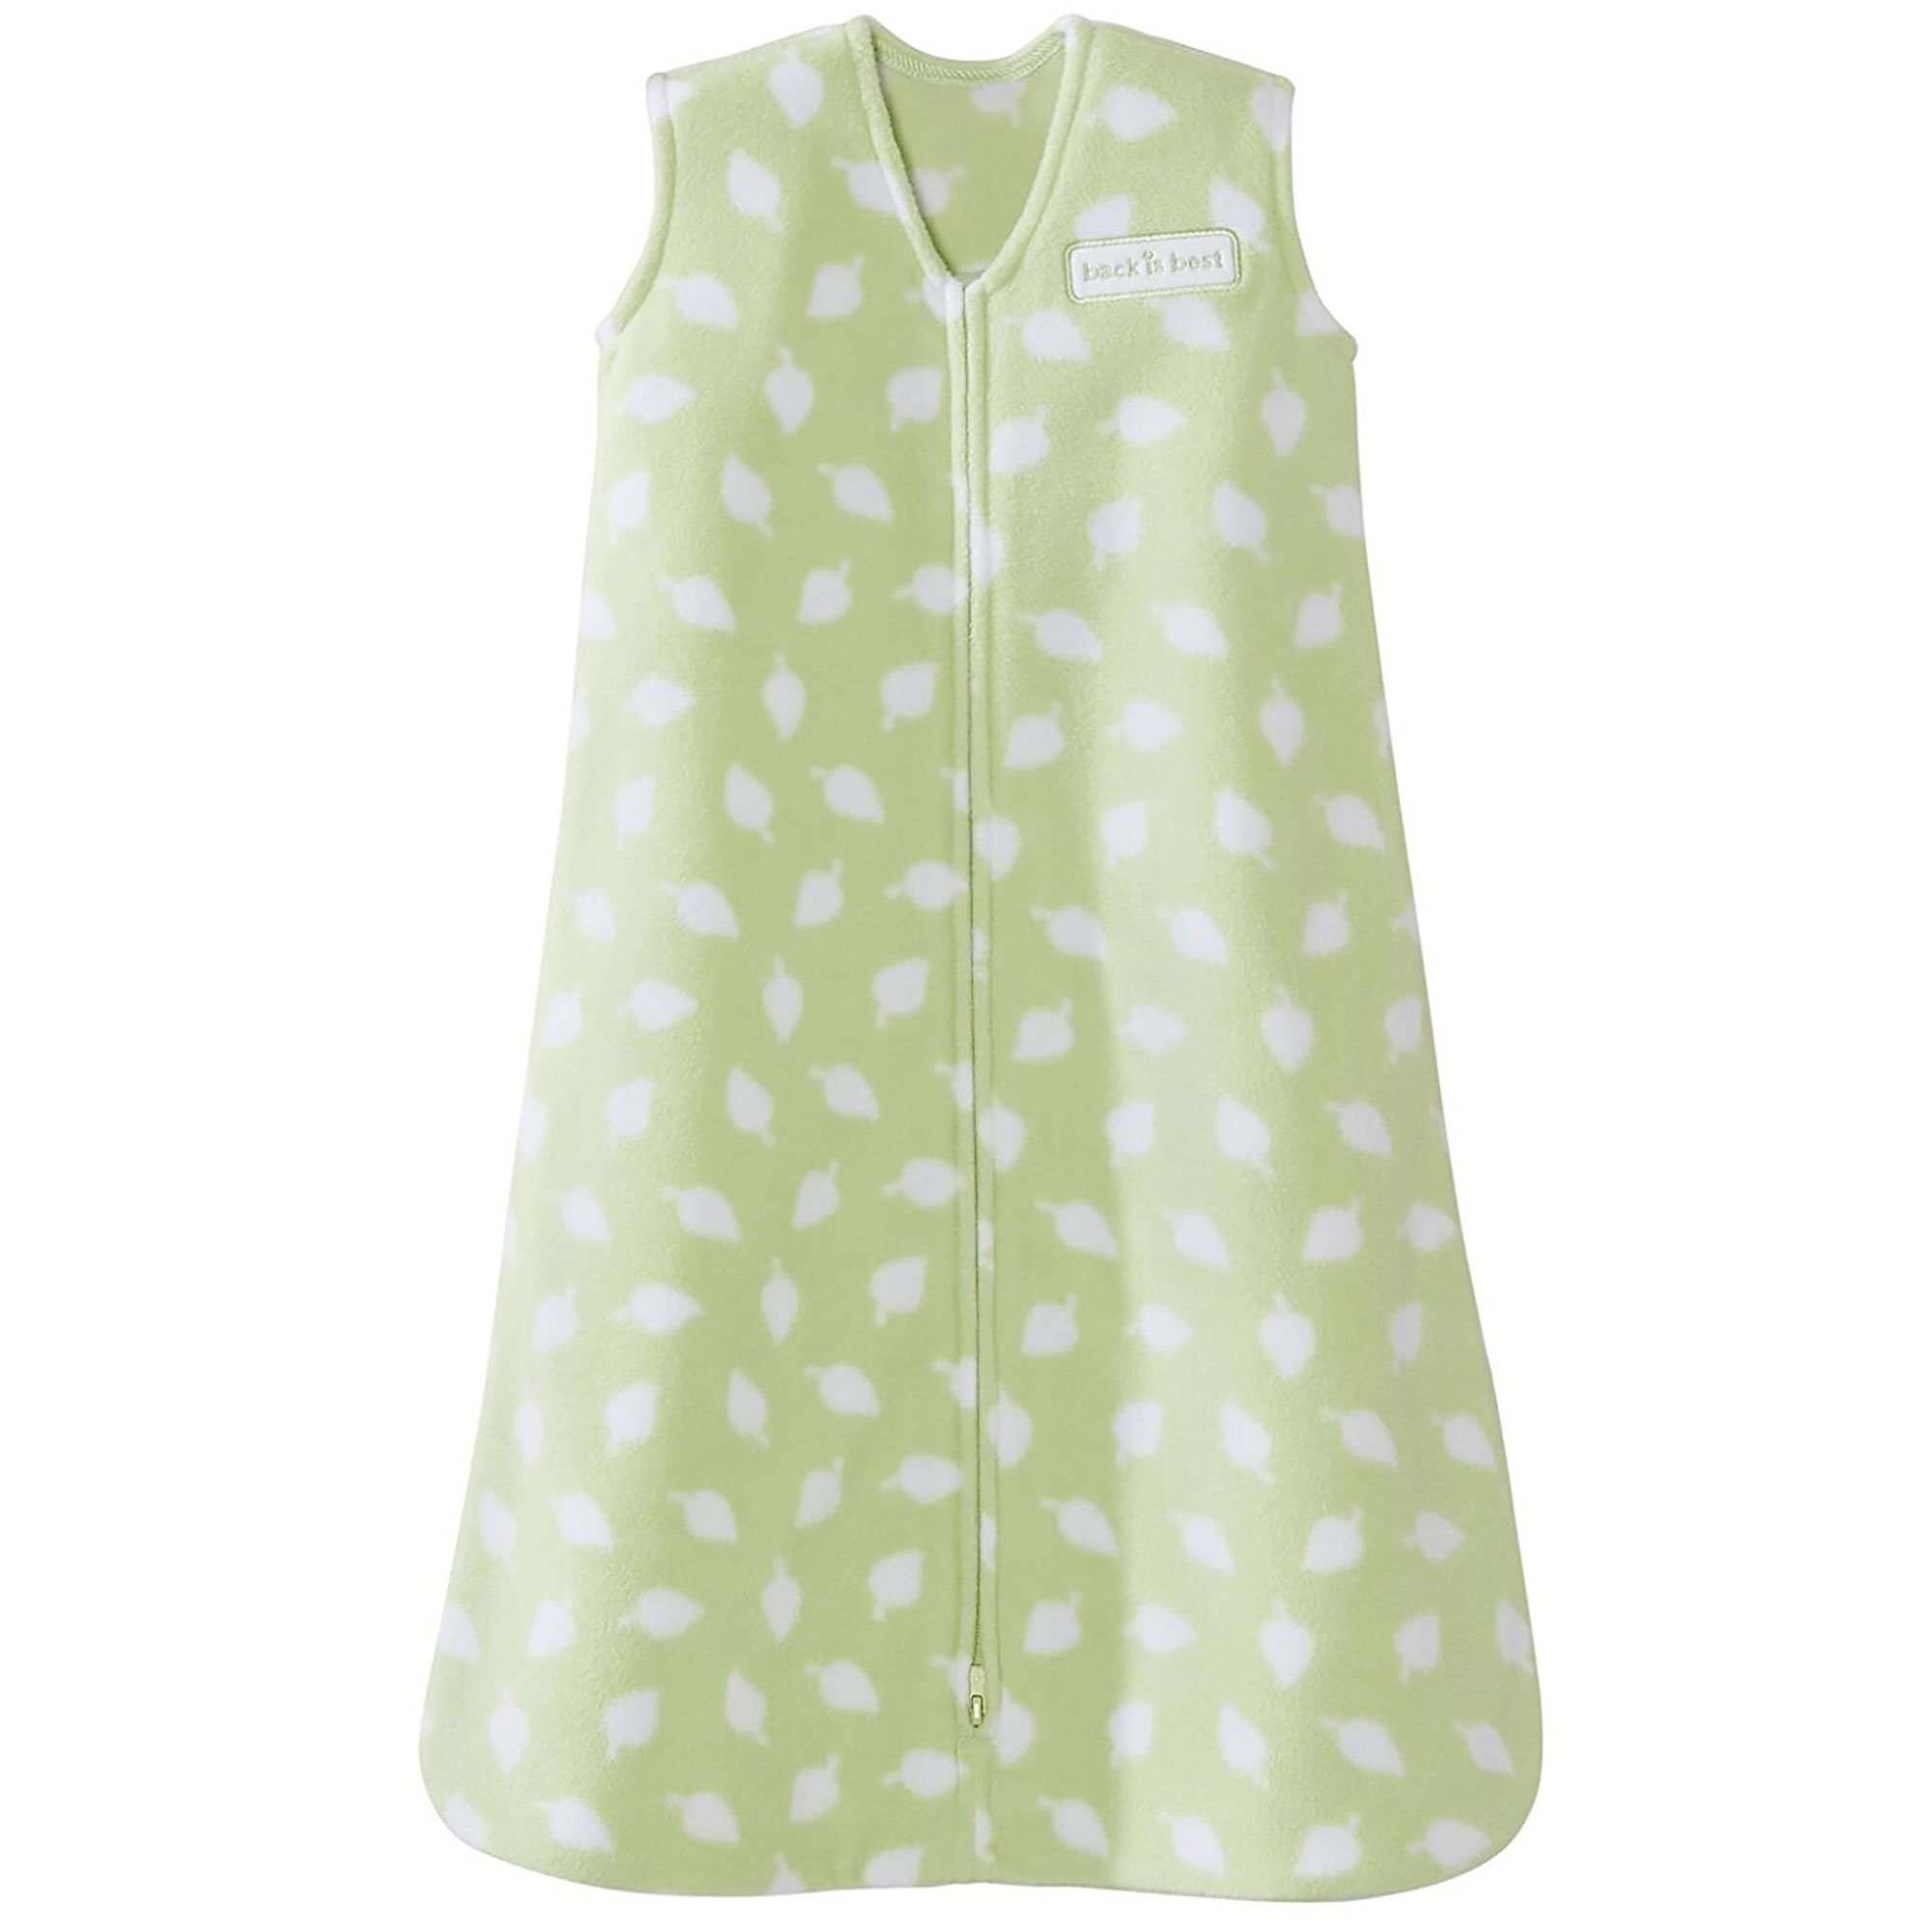 Halo Sleepsack Micro Fleece Wearable Blanket, Sage Leaves Print, Large